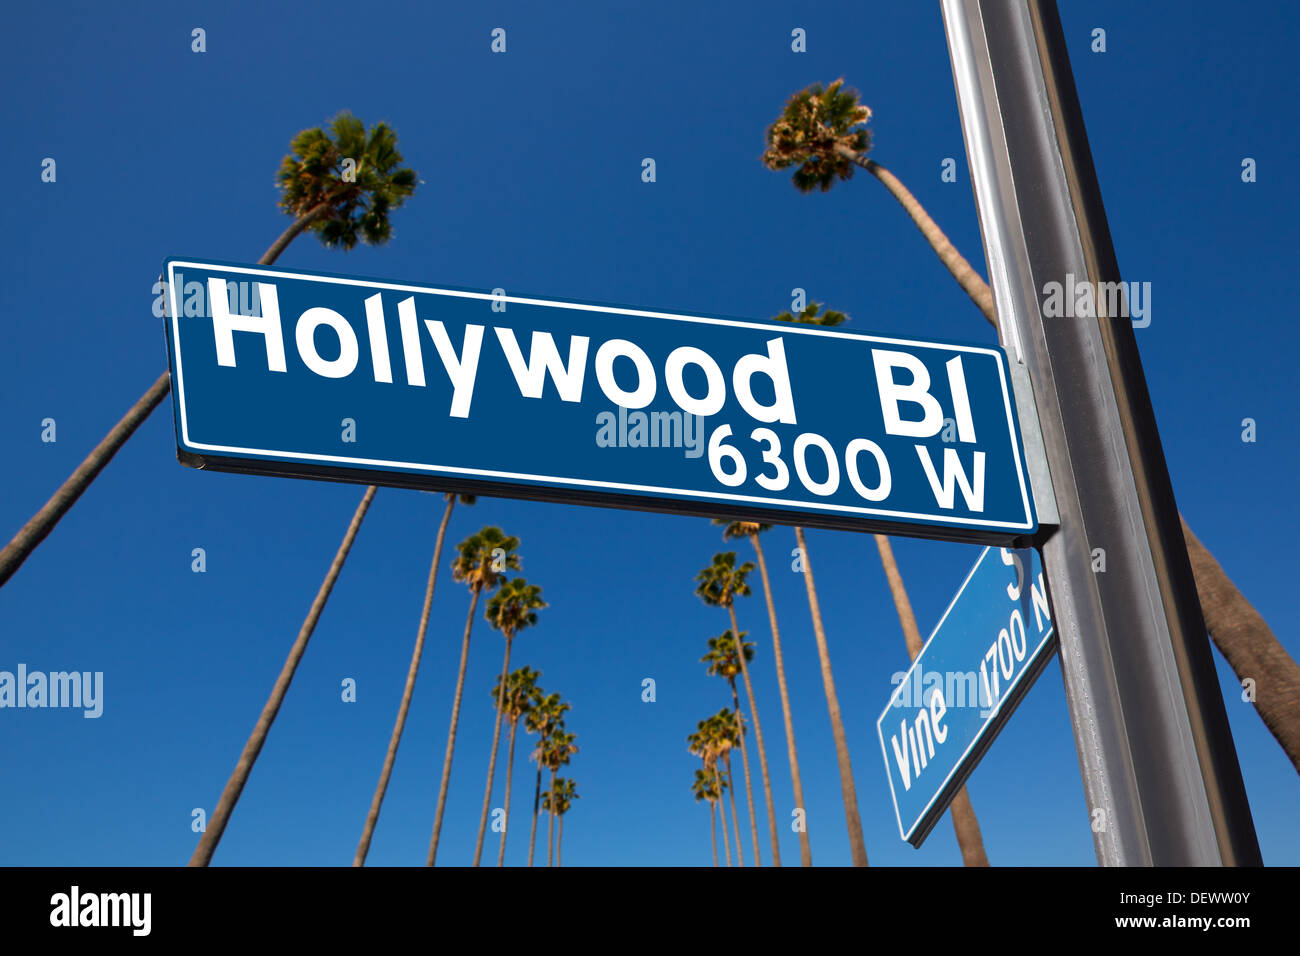 Hollywood Boulevard with vine sign illustration on palm trees background - Stock Image